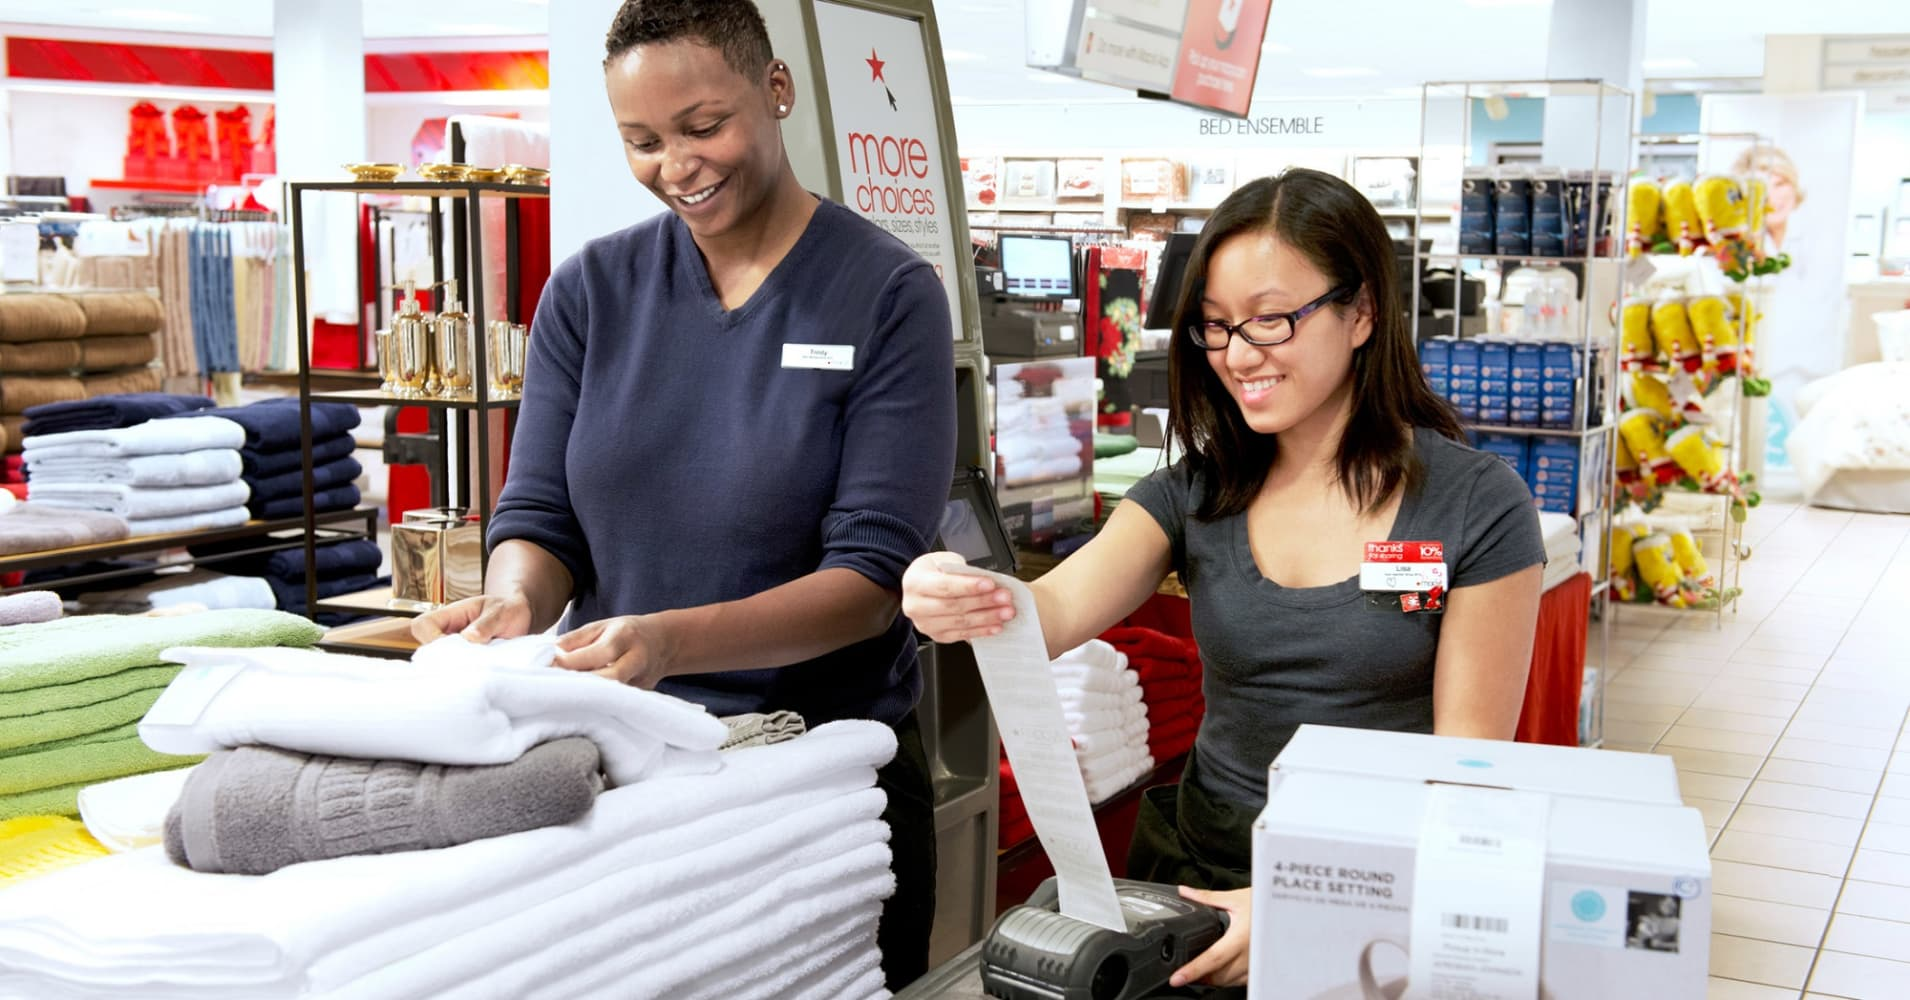 Macy S Is Hiring 80 000 Holiday Workers How To Land A Job